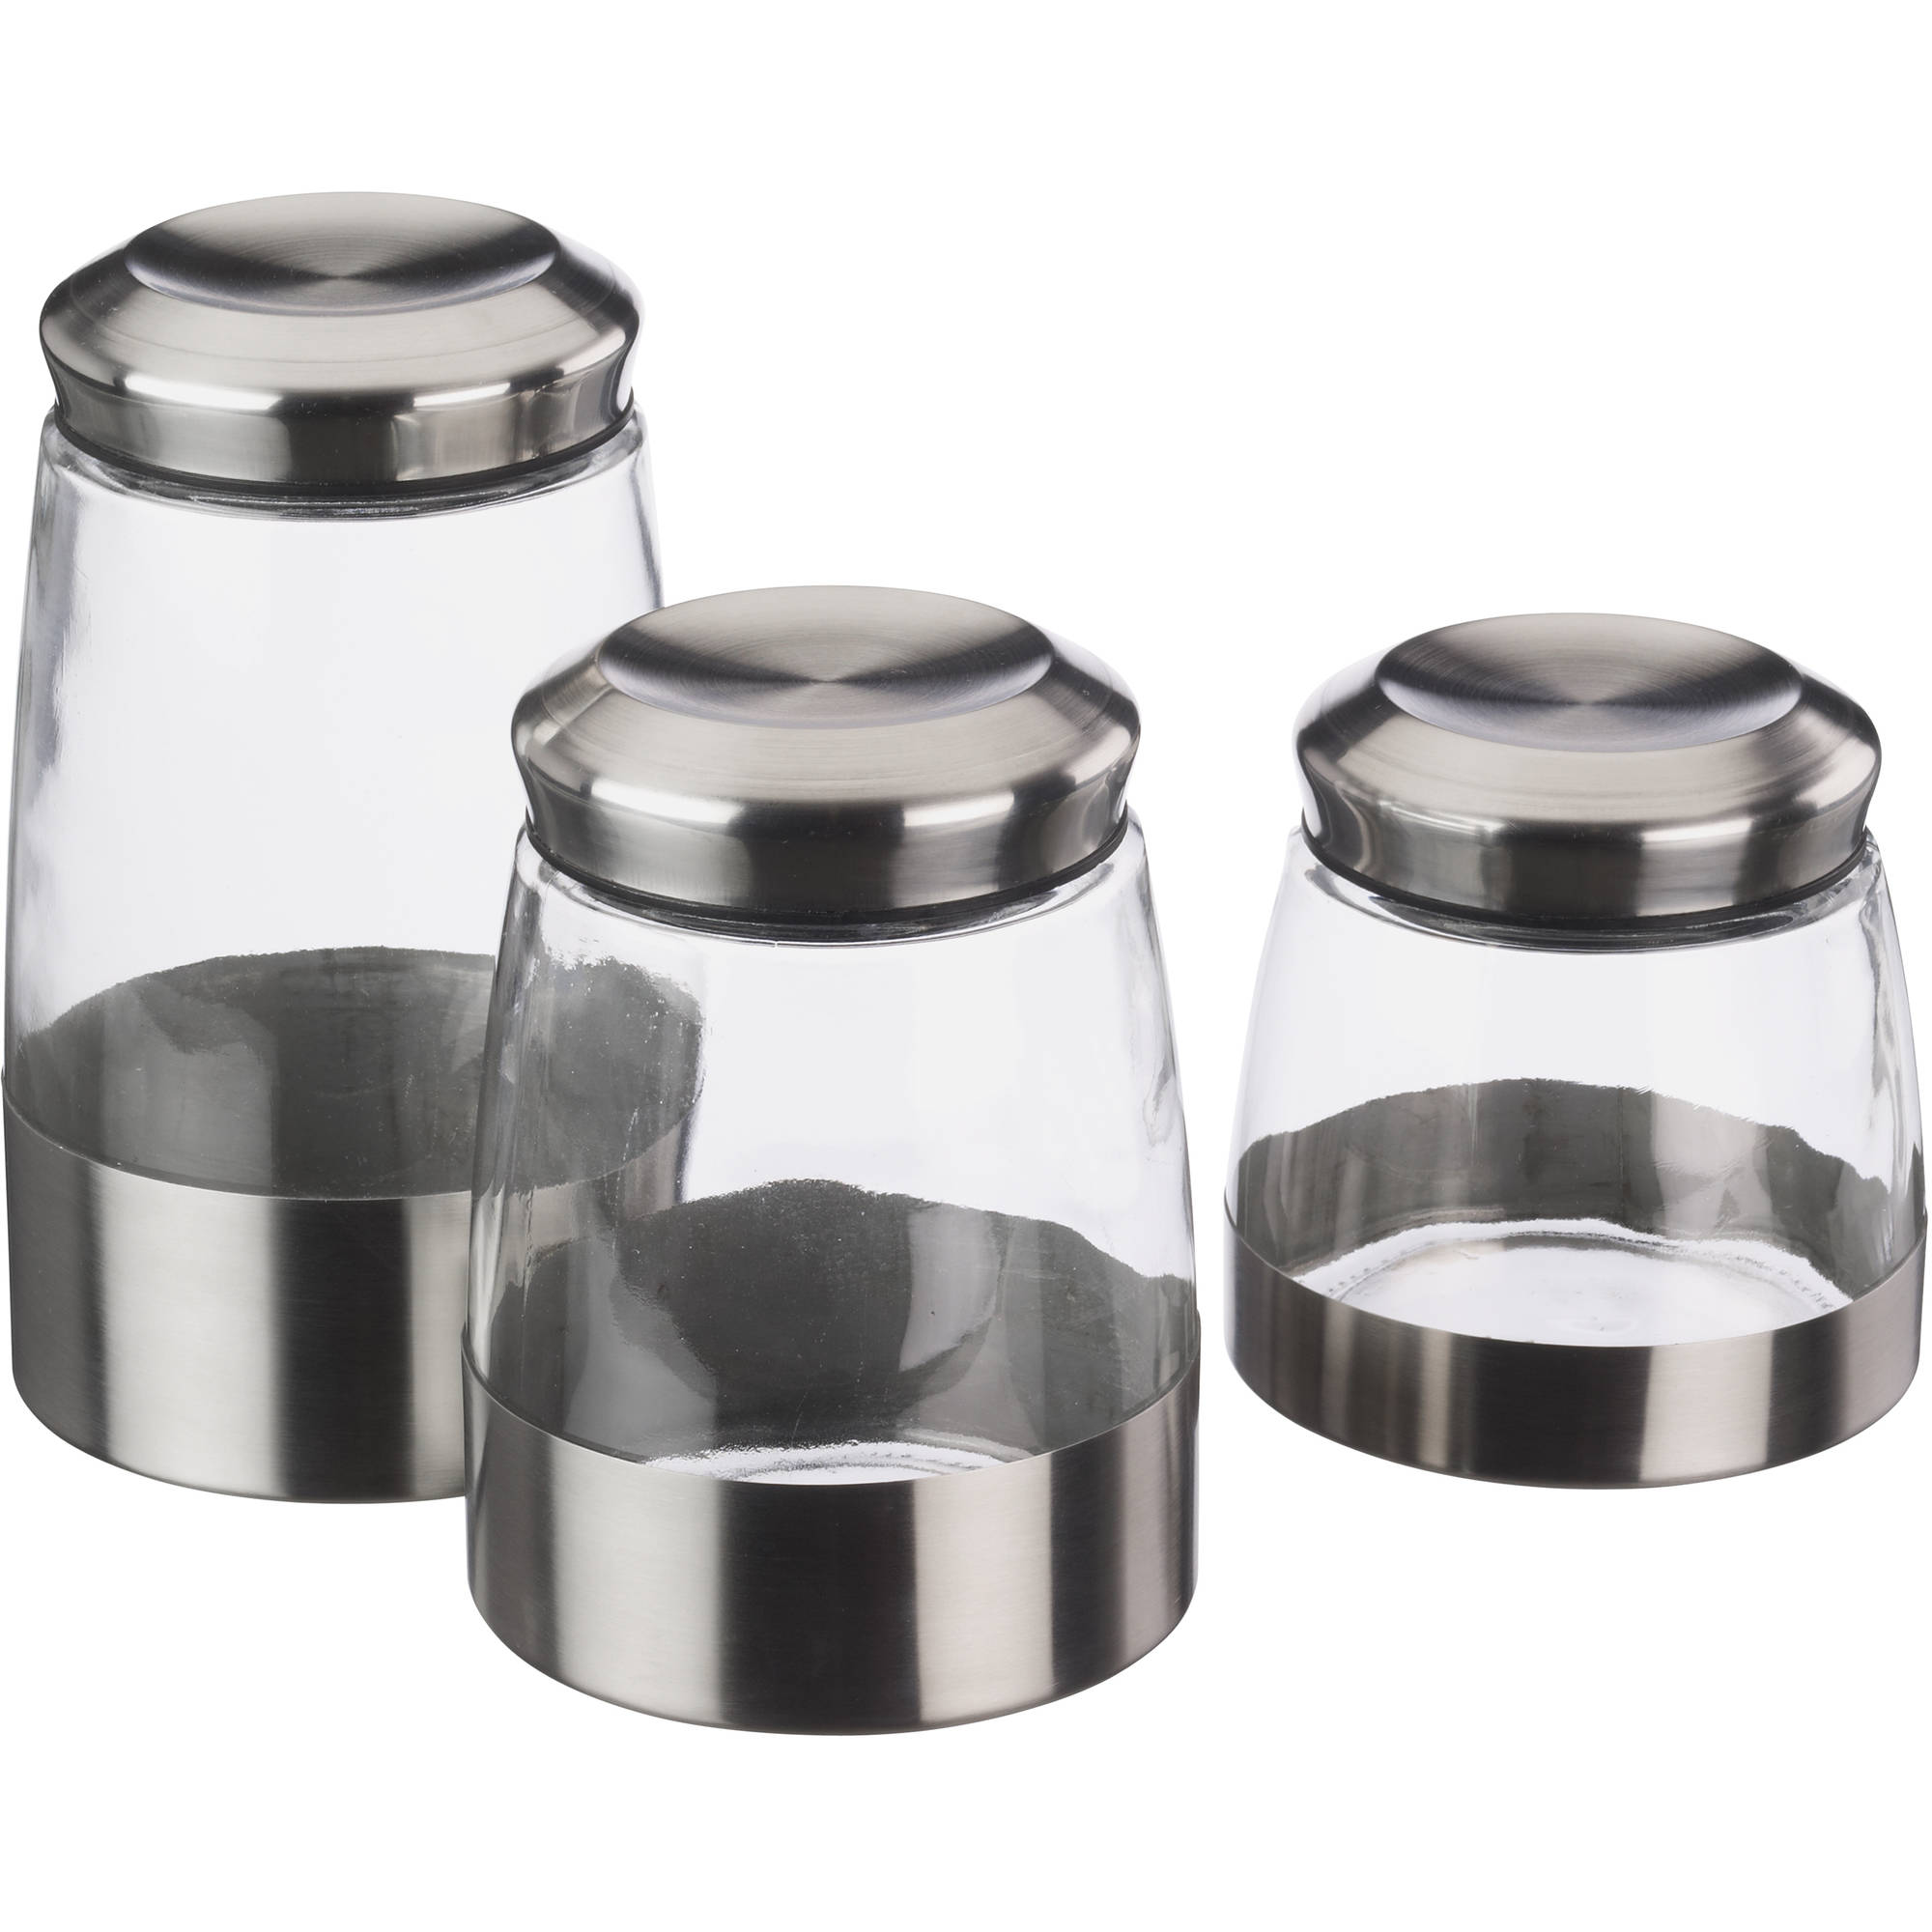 Ordinaire Mainstays 3 Piece Glass Canister Set   Walmart.com